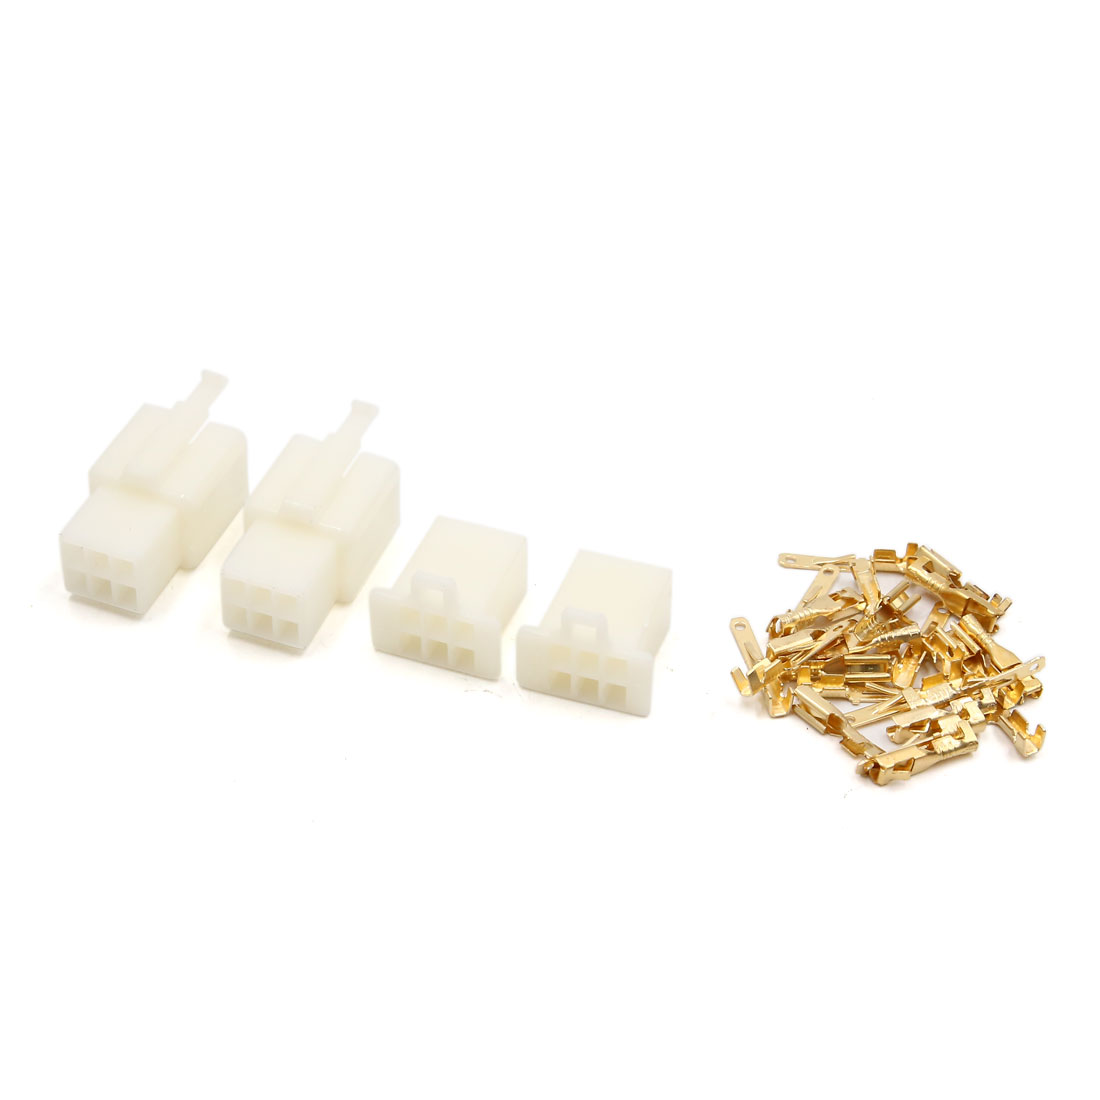 """2 Sets 6-pin 2.8mm 7/64"""" Male/Female 22-18AWG Nylon Latching Connector"""